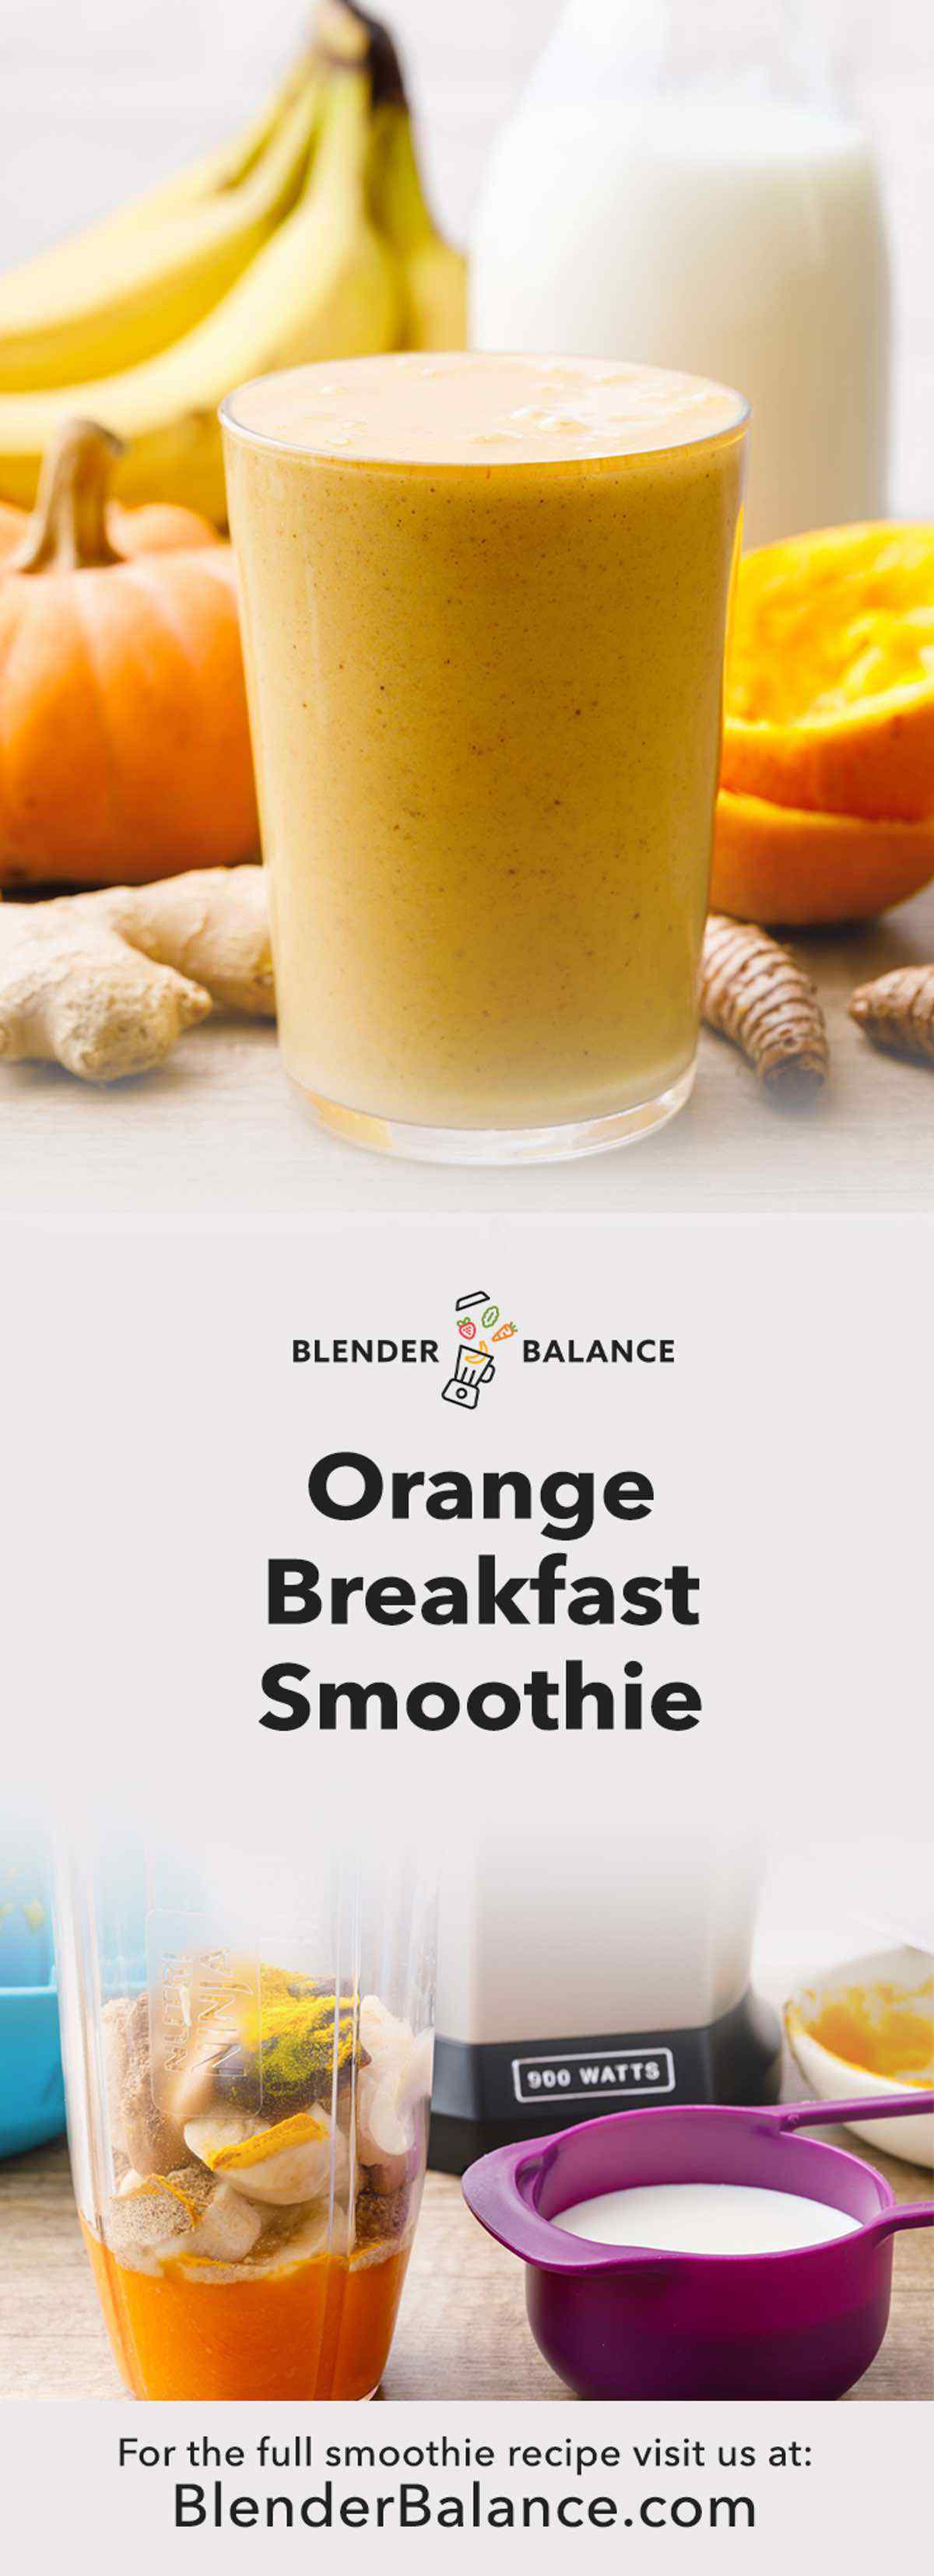 Orange Breakfast Smoothie